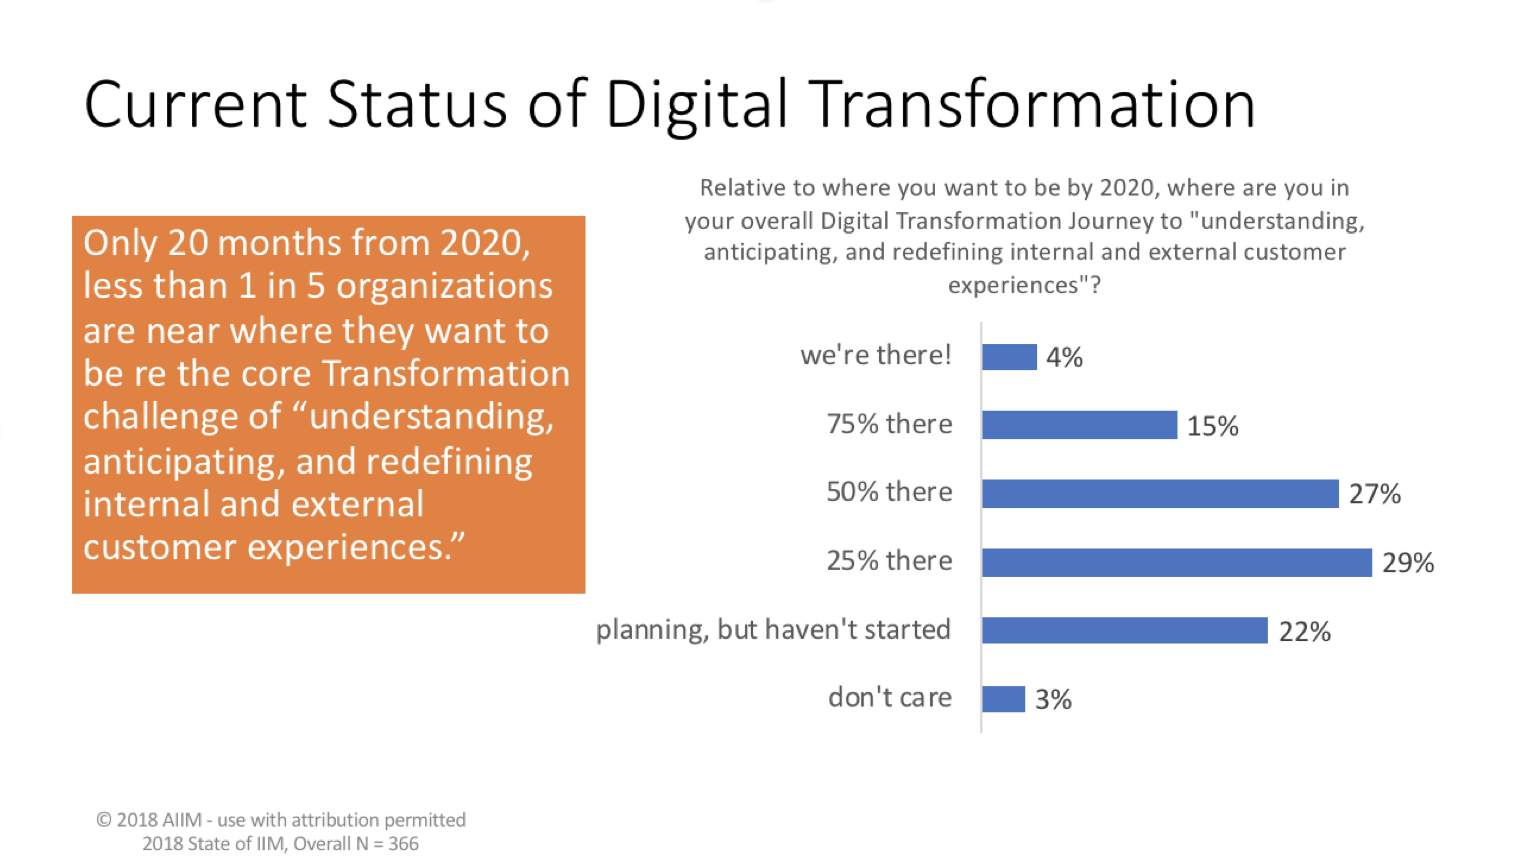 AIIM Research showing the current status of digital transformation